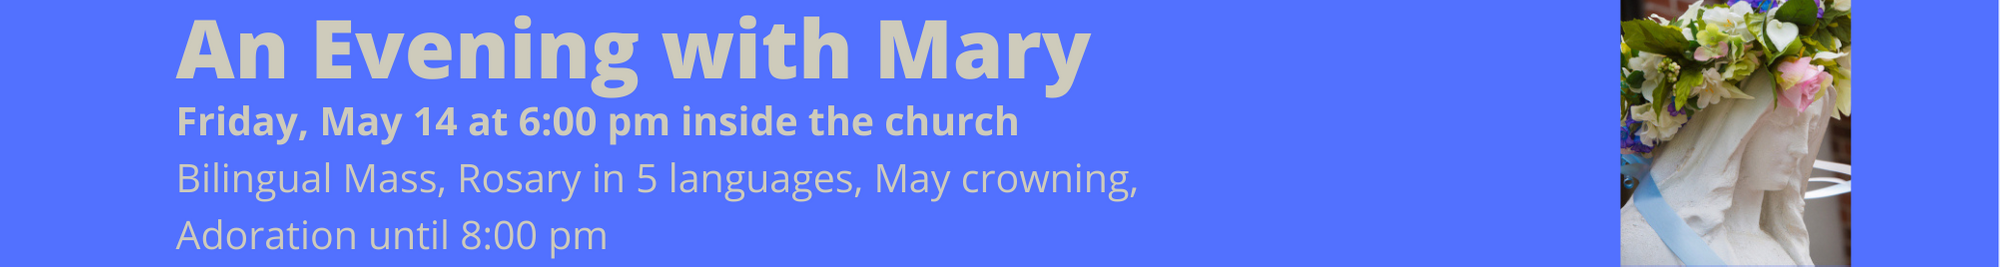 Evening With Mary Web English